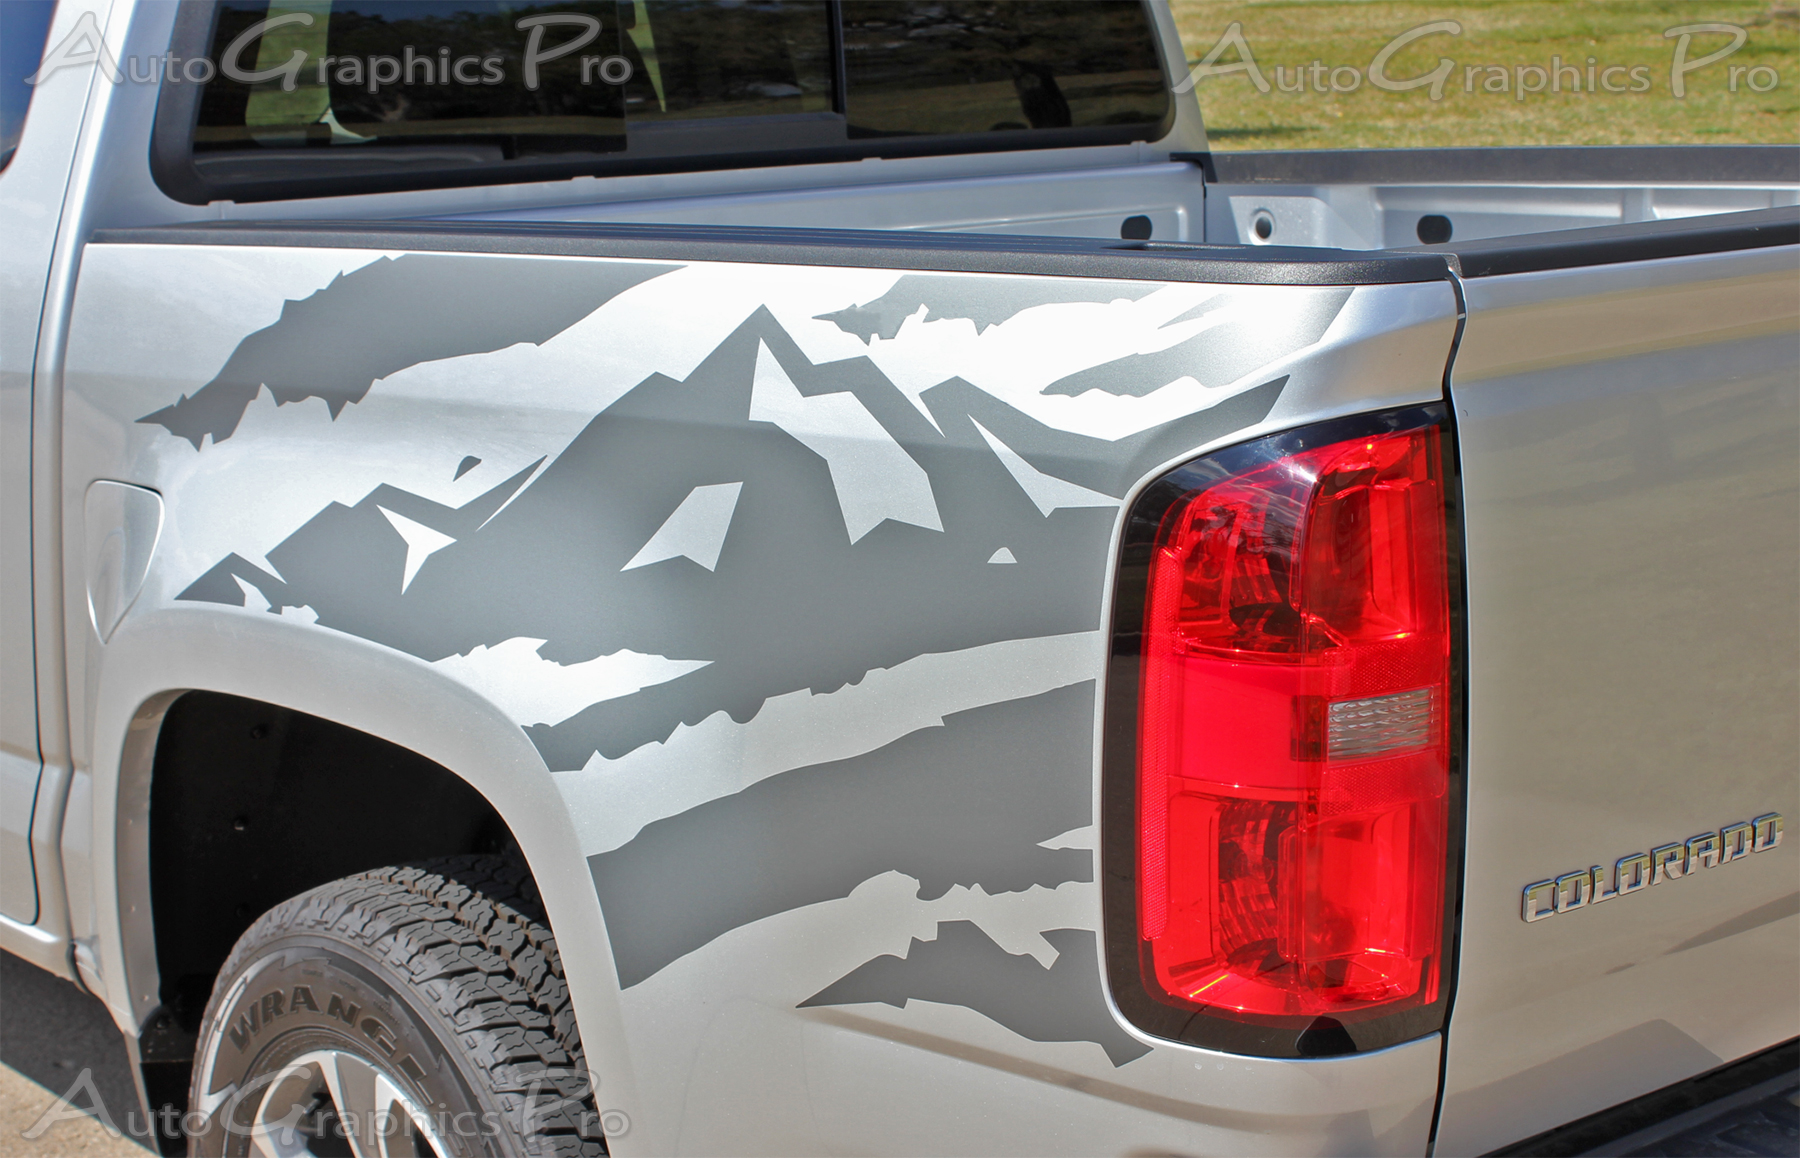 2015 2016 2017 2018 Chevy Colorado Truck Bed Stripes. Sunrise Service Banners. Wording Decals. Music Knoxville History Murals. Fang Decals. Wooden Murals. Inspector Gadget Logo. Goku Decals. Sport Suzuki Stickers